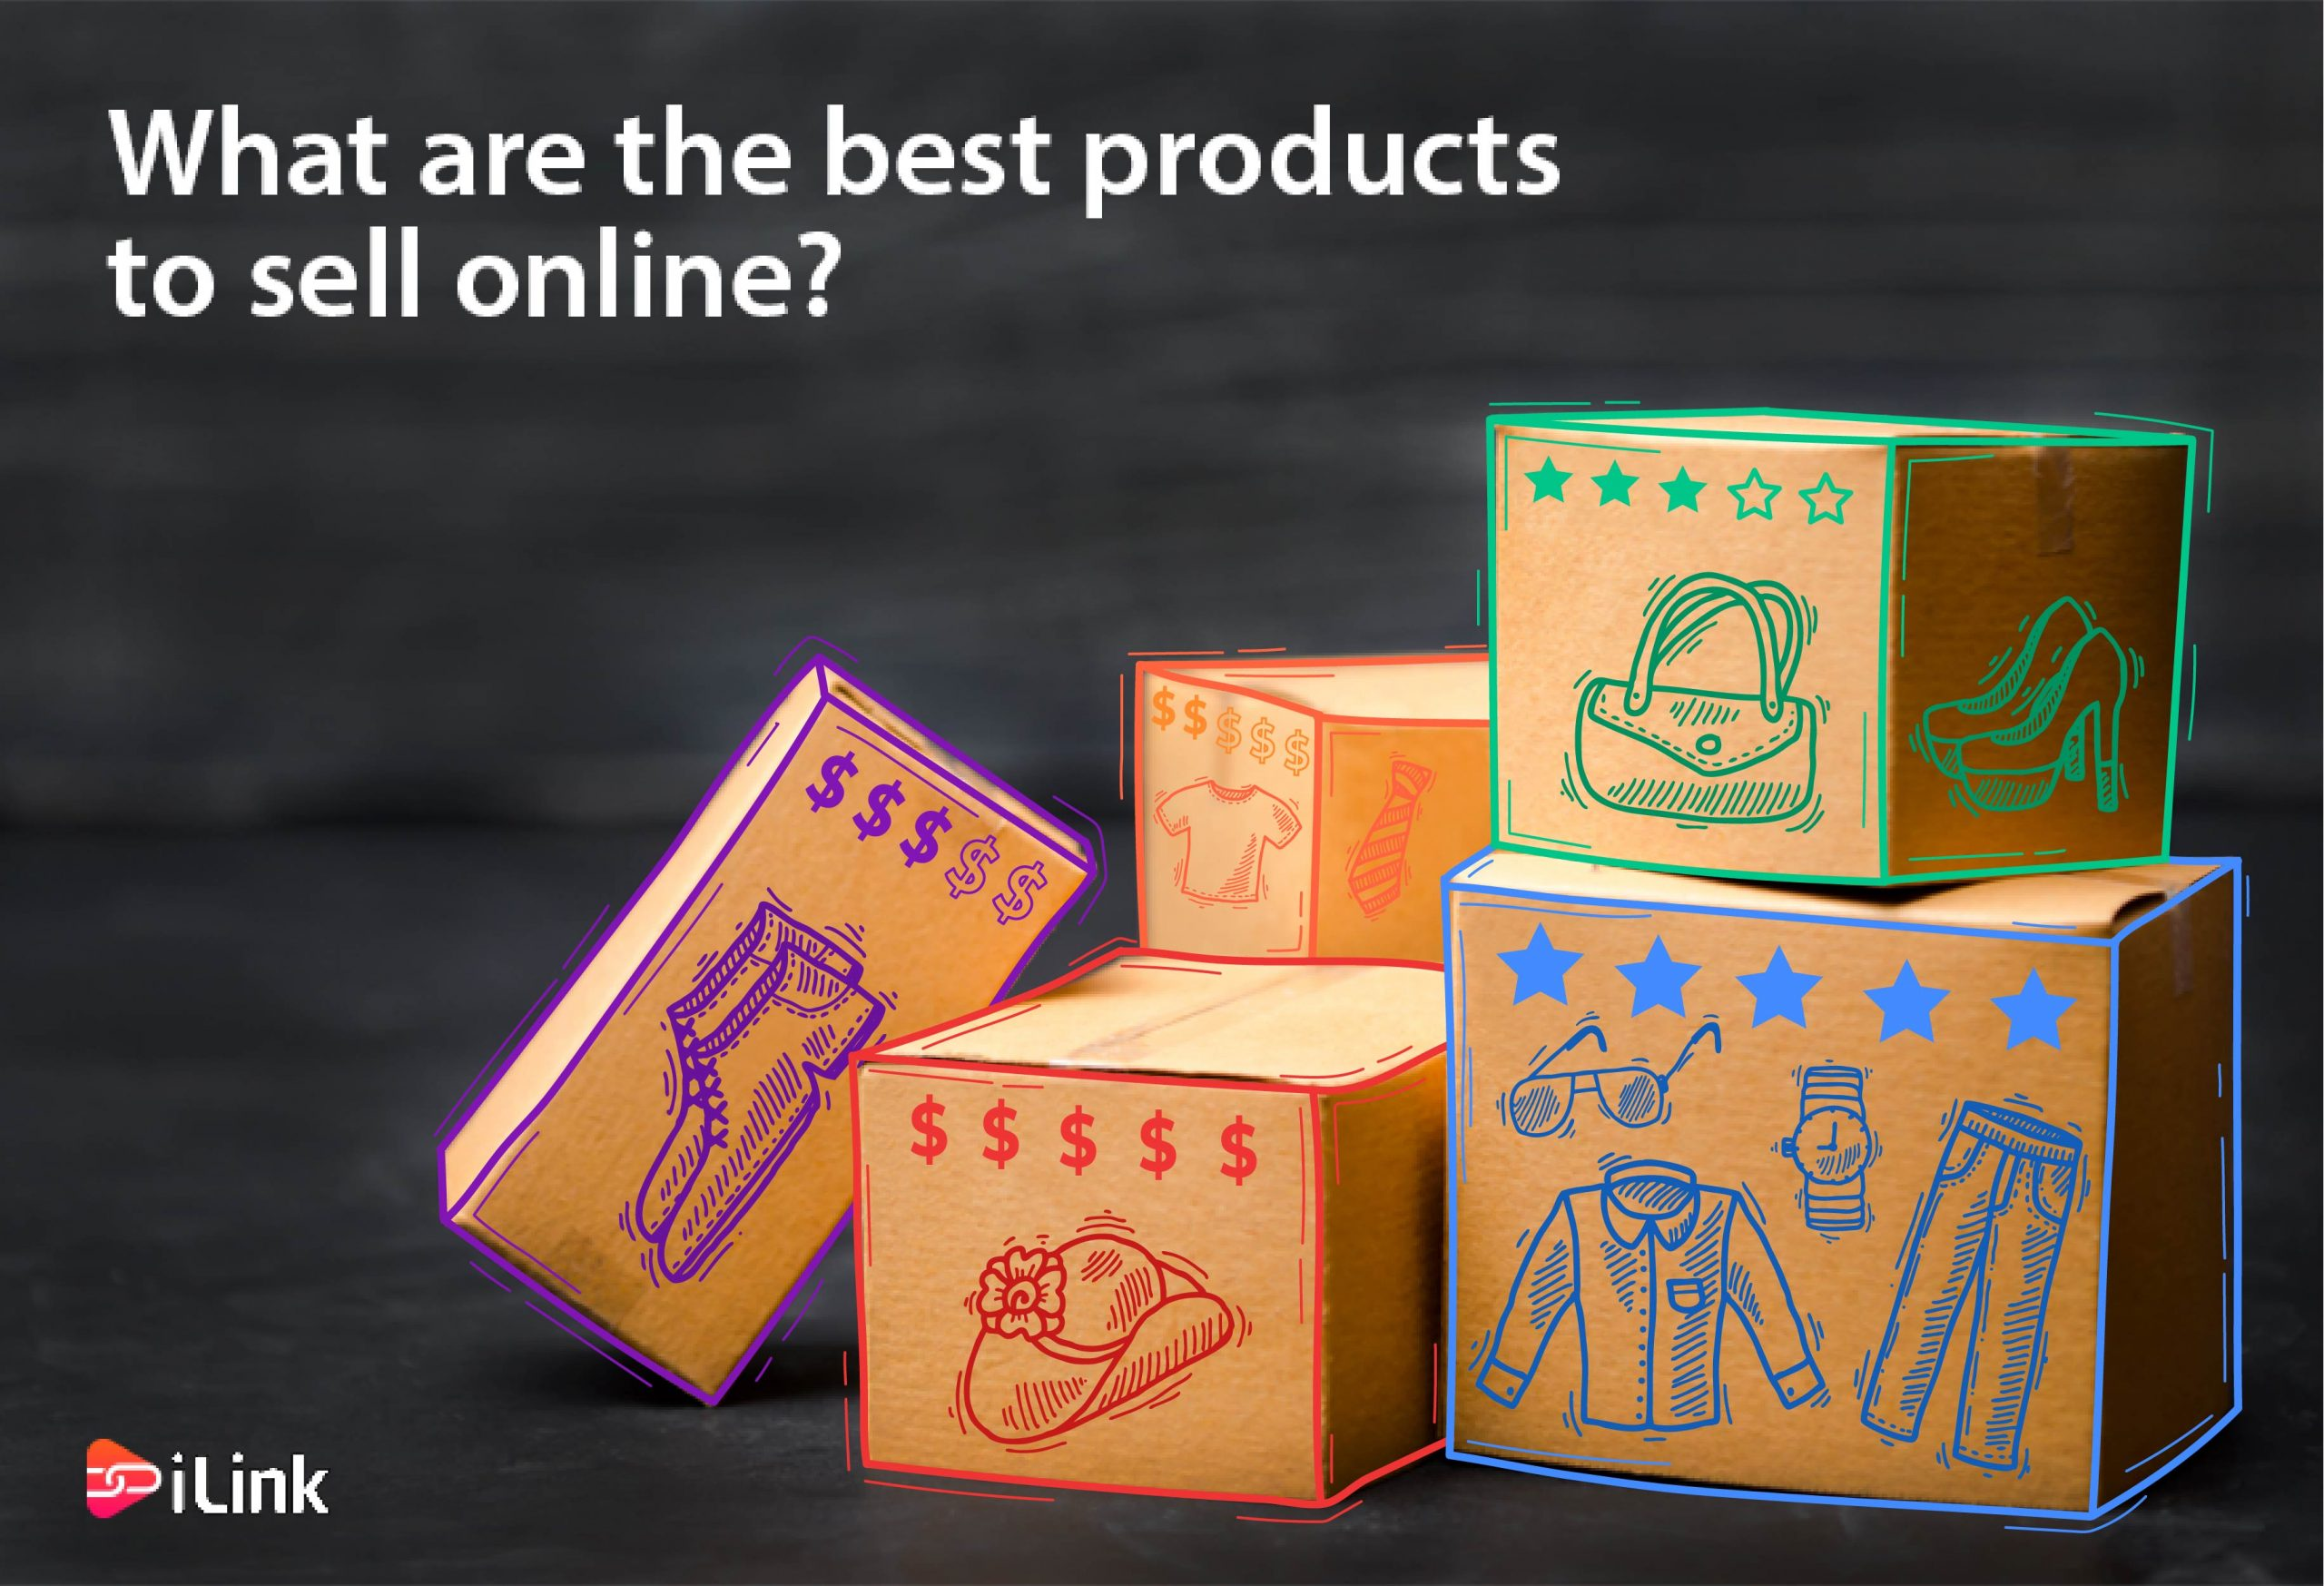 What are the best products to sell online?